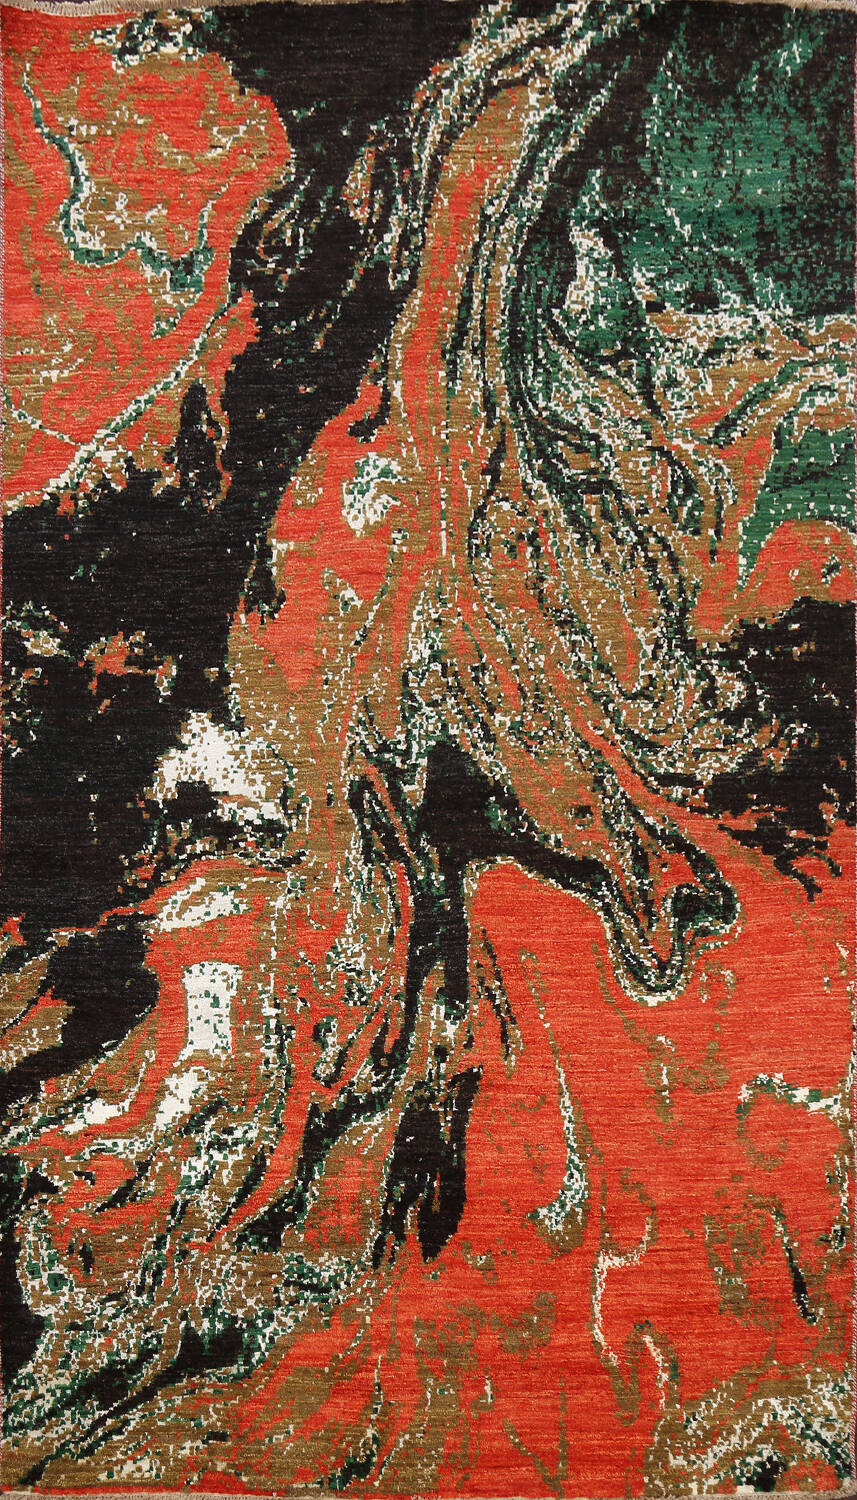 Artistic Modern Abstract Oriental Area Rug 5x8 image 1